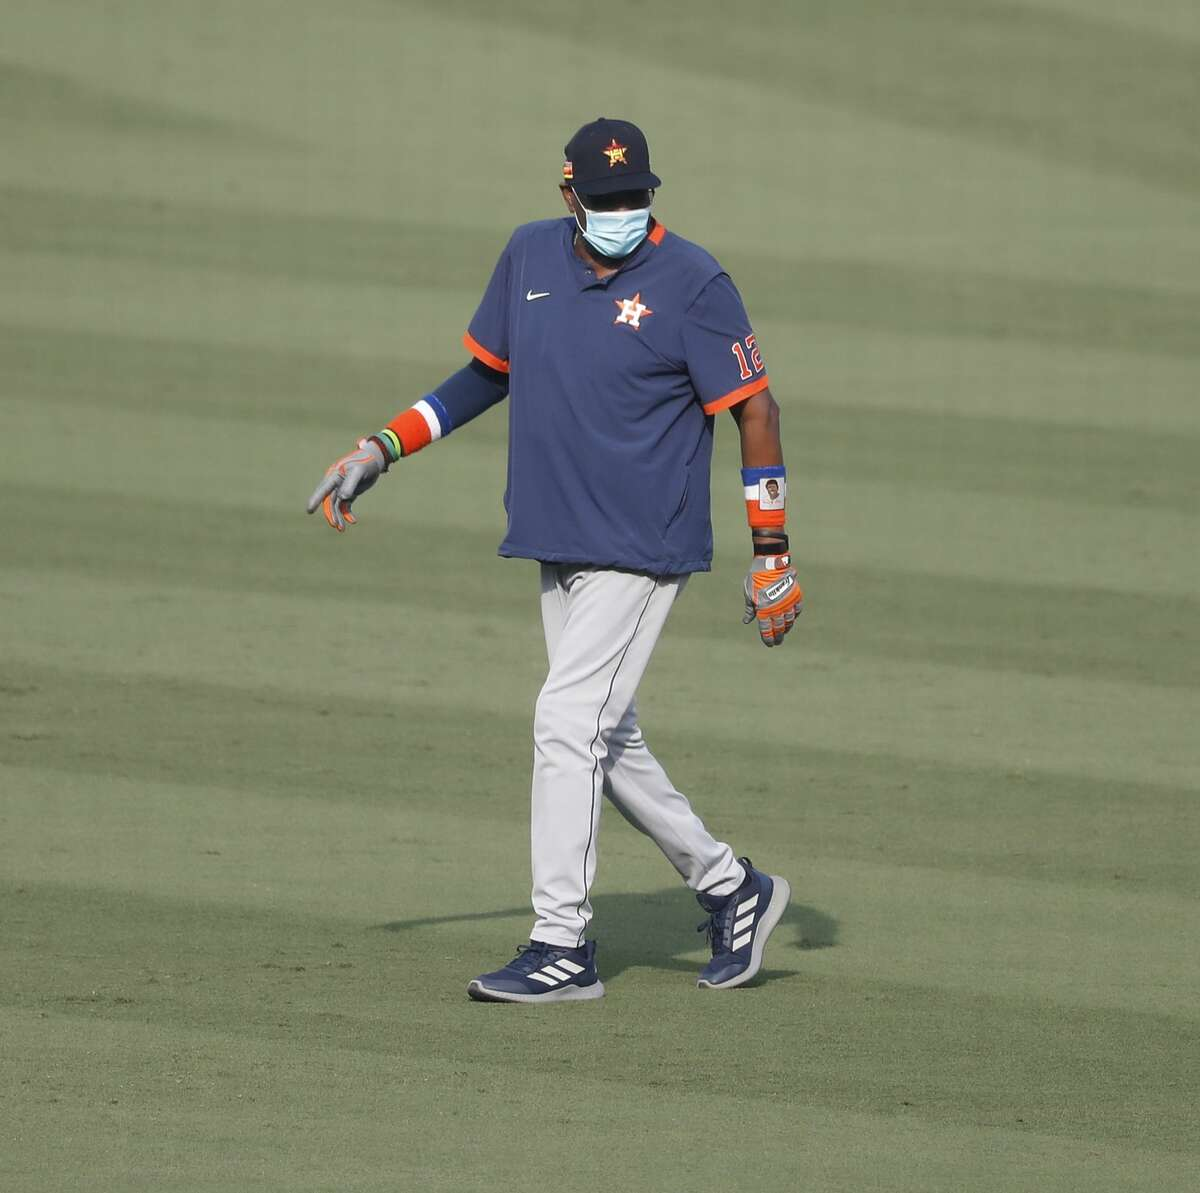 Houston Astros manager Dusty Baker Jr. walks out to the outfield during batting practice and workouts, Sunday, October 4, 2020, in Los Angeles, as the Astros prepared to take on the Oakland Athletics in Game 1 of the ALDS, Monday, at Dodger Stadium.